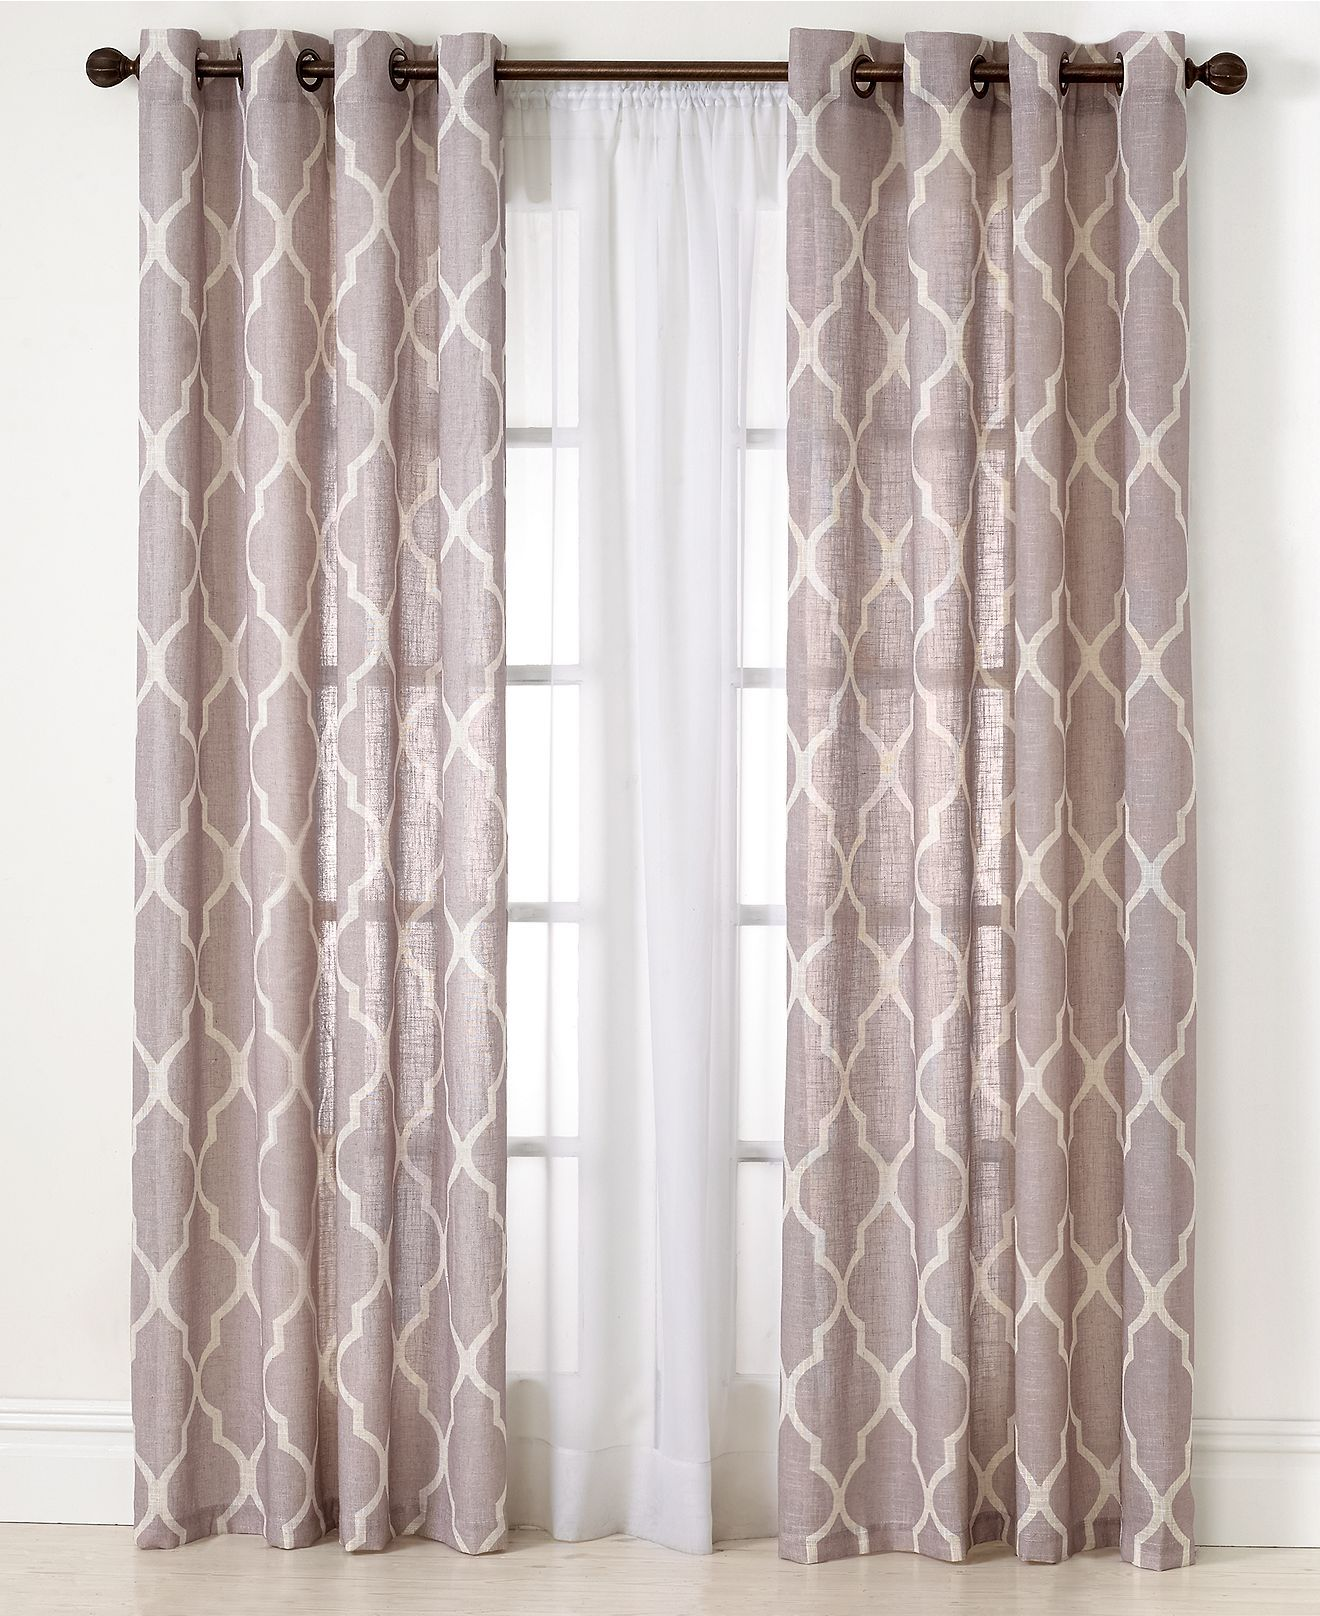 Elrene Medalia Window Treatment Collection - Easy Care Linen Look. Dining  Room WindowsLiving Room CurtainsBedroom ... - Elrene Medalia Window Treatment Collection - Fashion Window